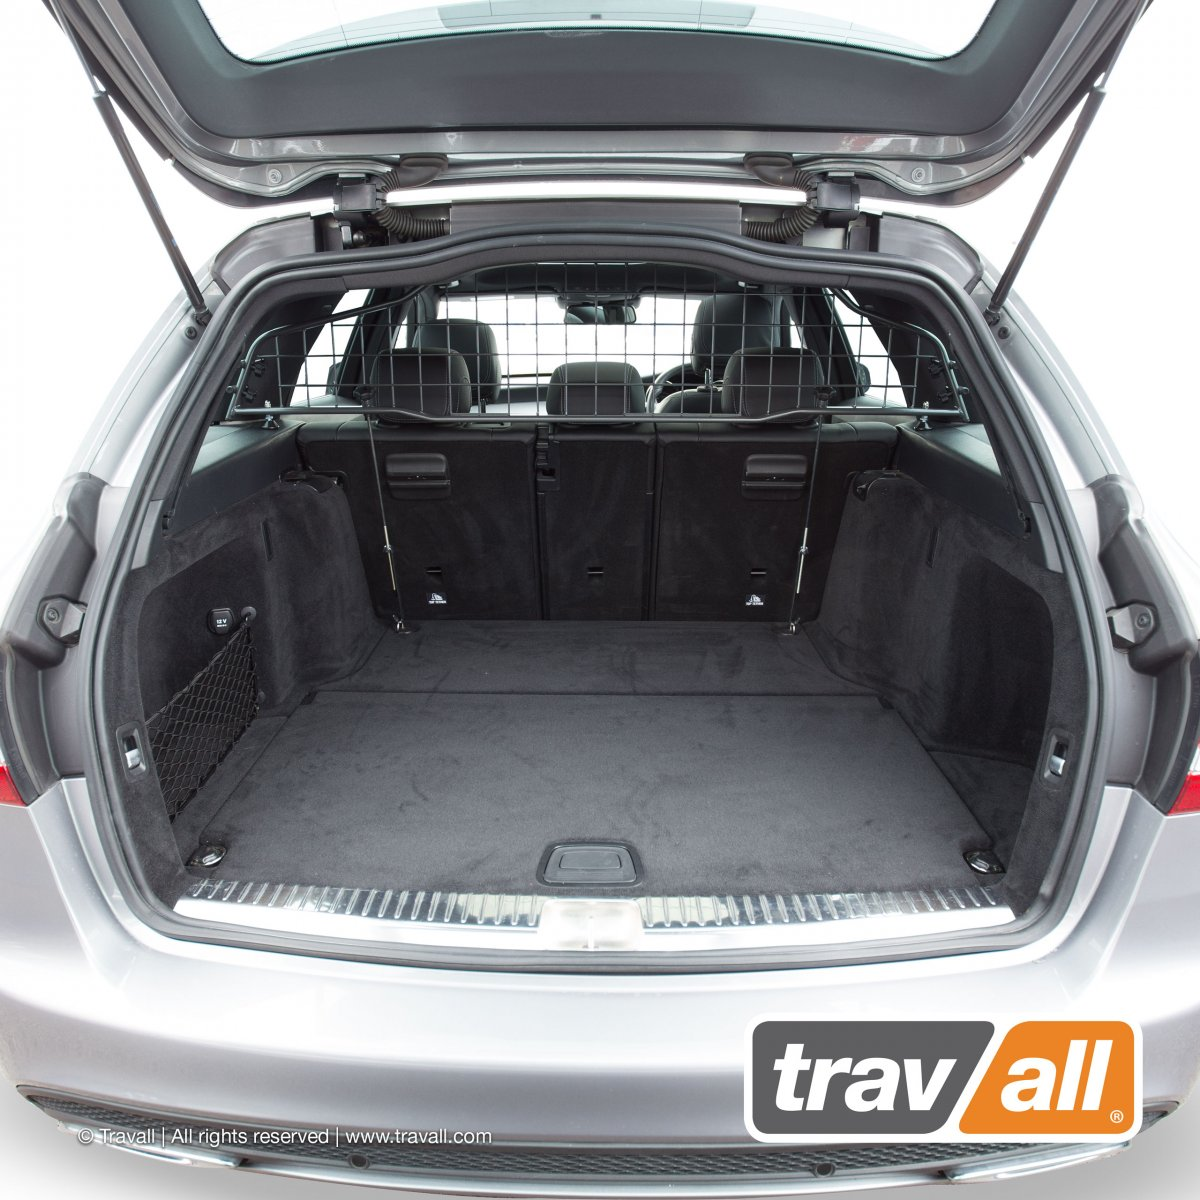 Travall® Guard voor Mercedes Benz C-Klasse Estate S205 2014 - 2018